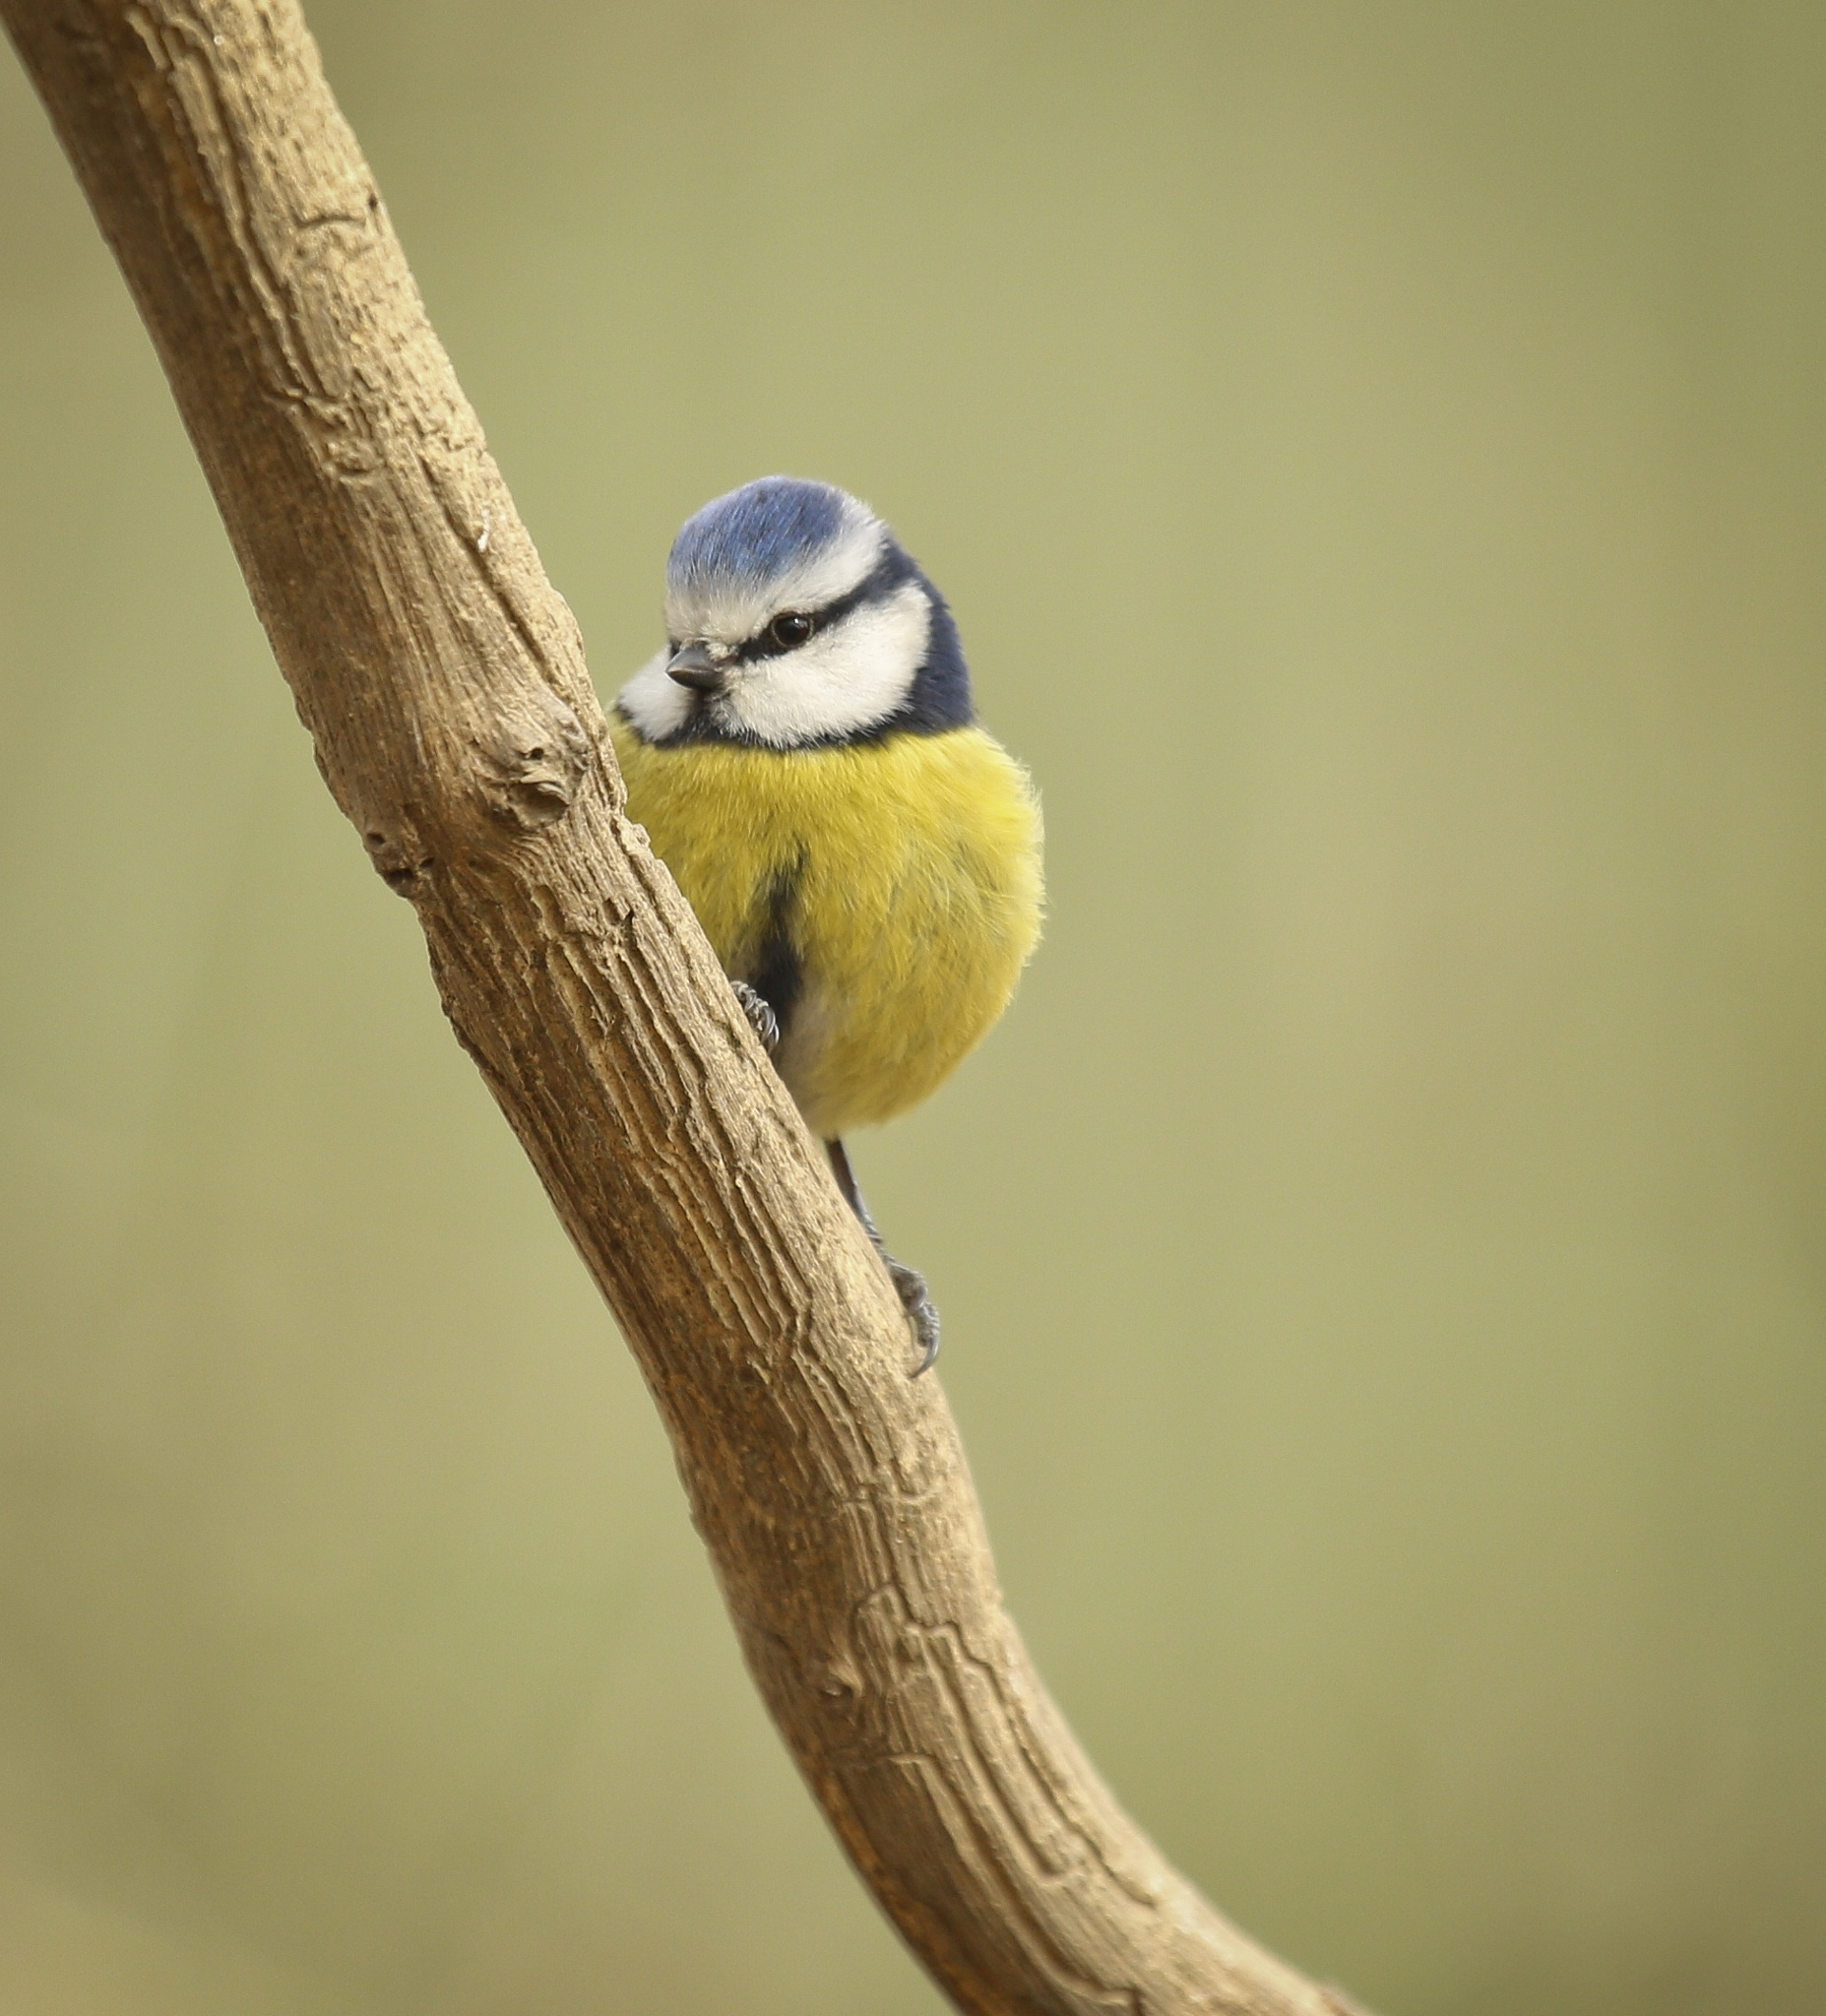 Blue Tit by Sarah Walters